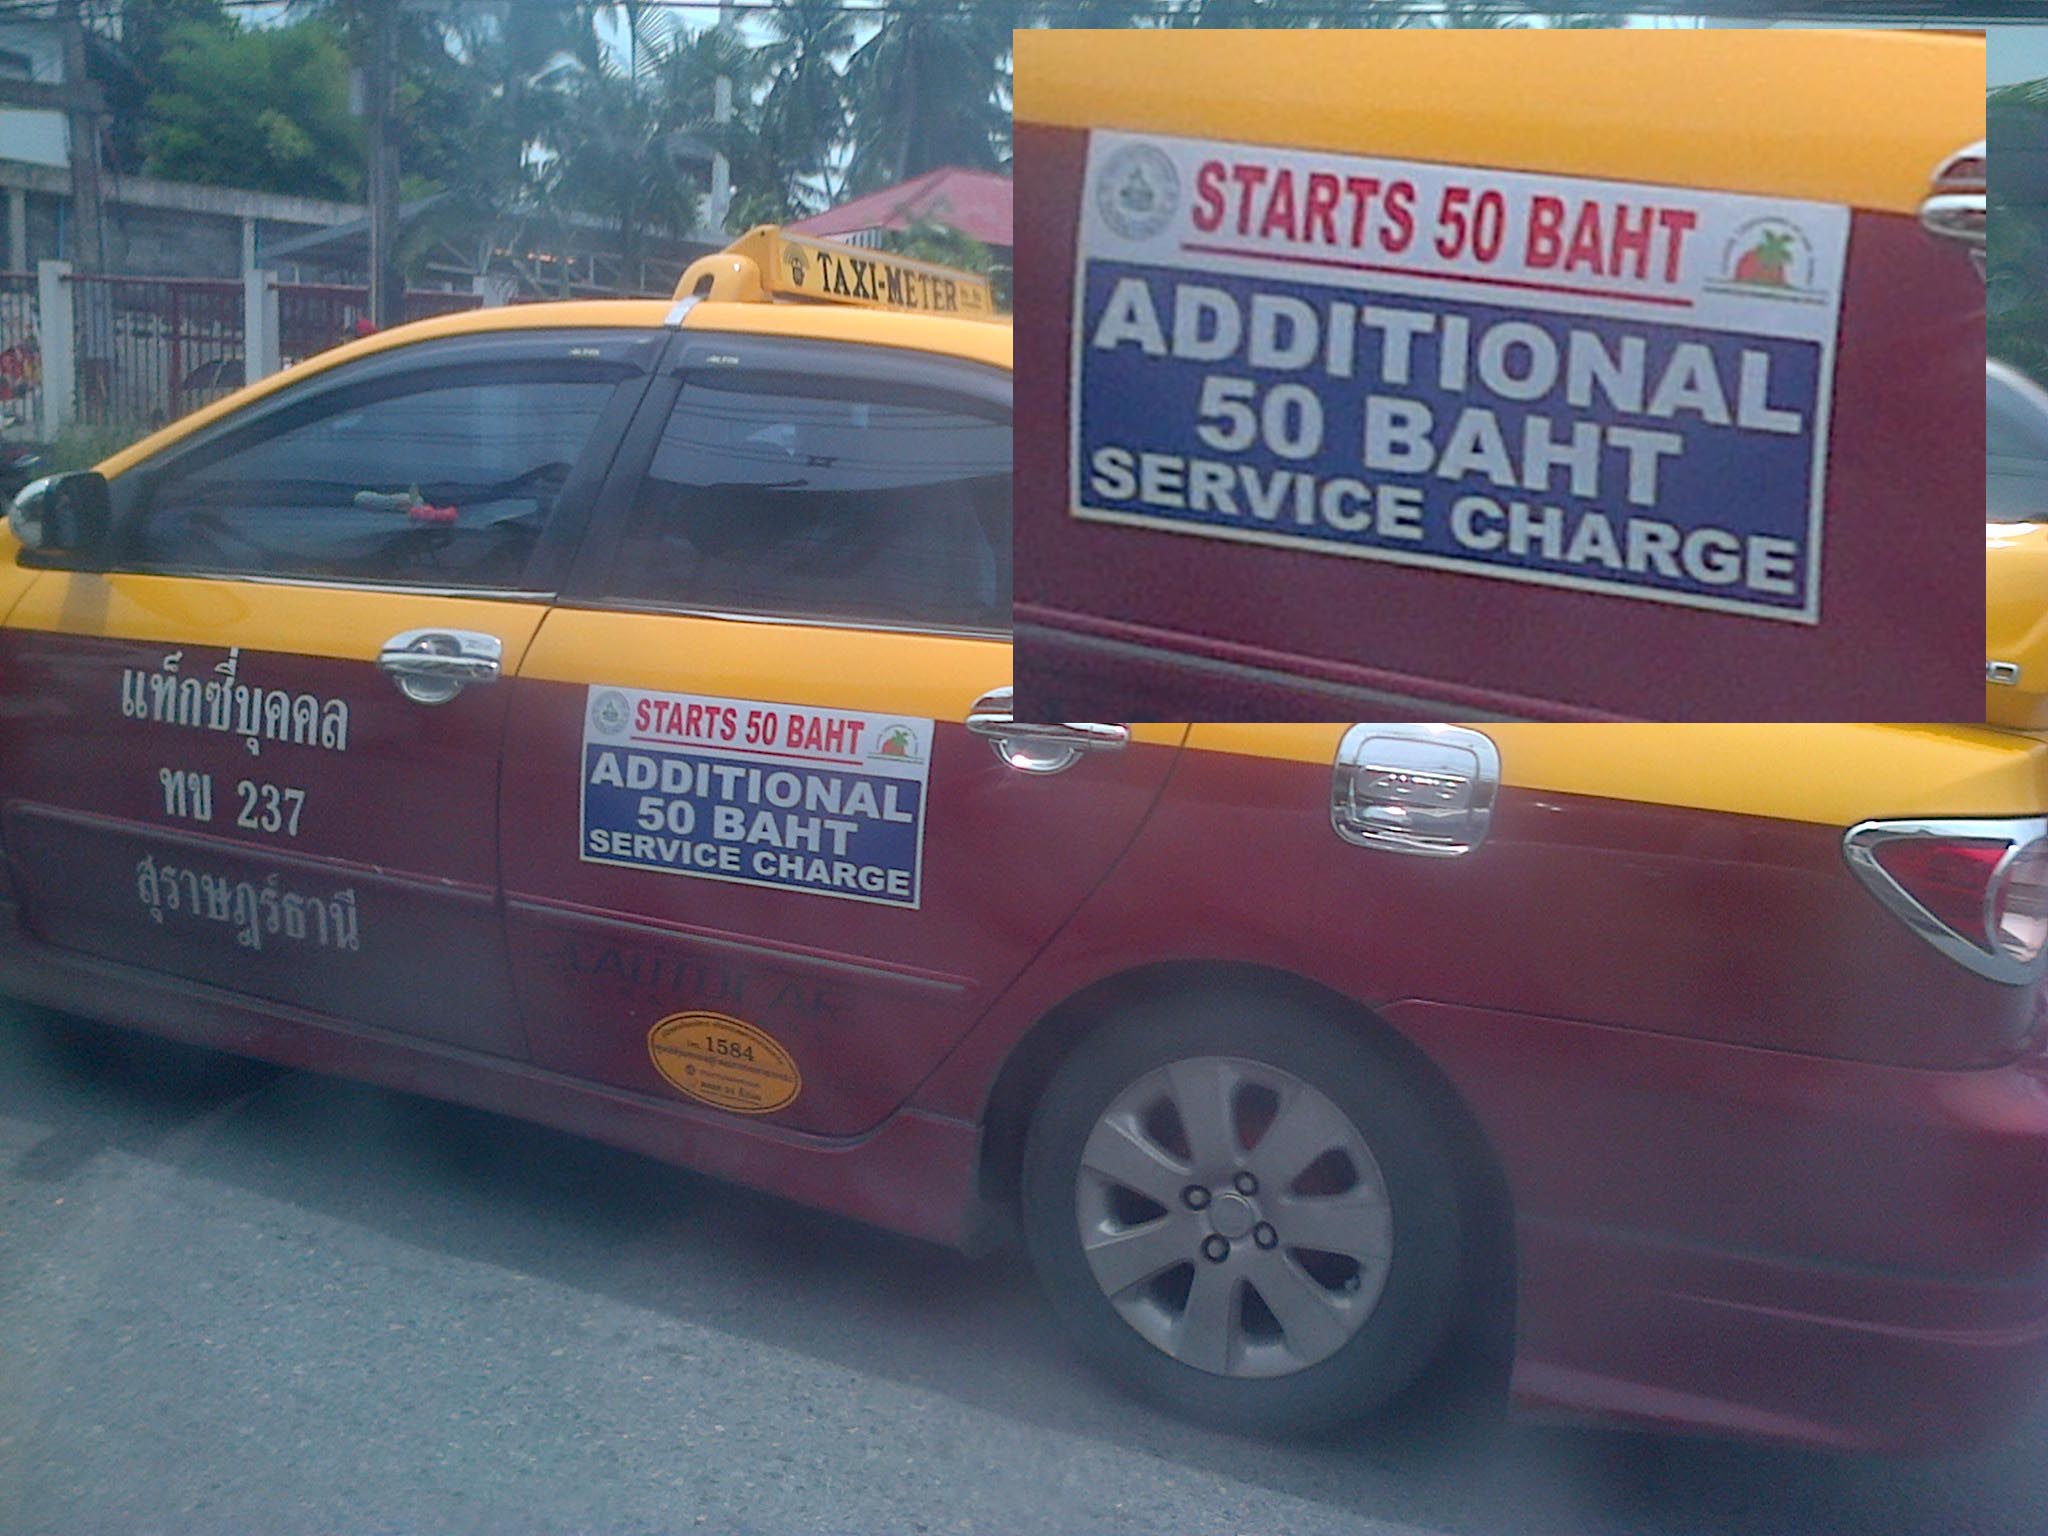 Taxi forced to use a meters now adding fare surcharges in Samui | Samui Times